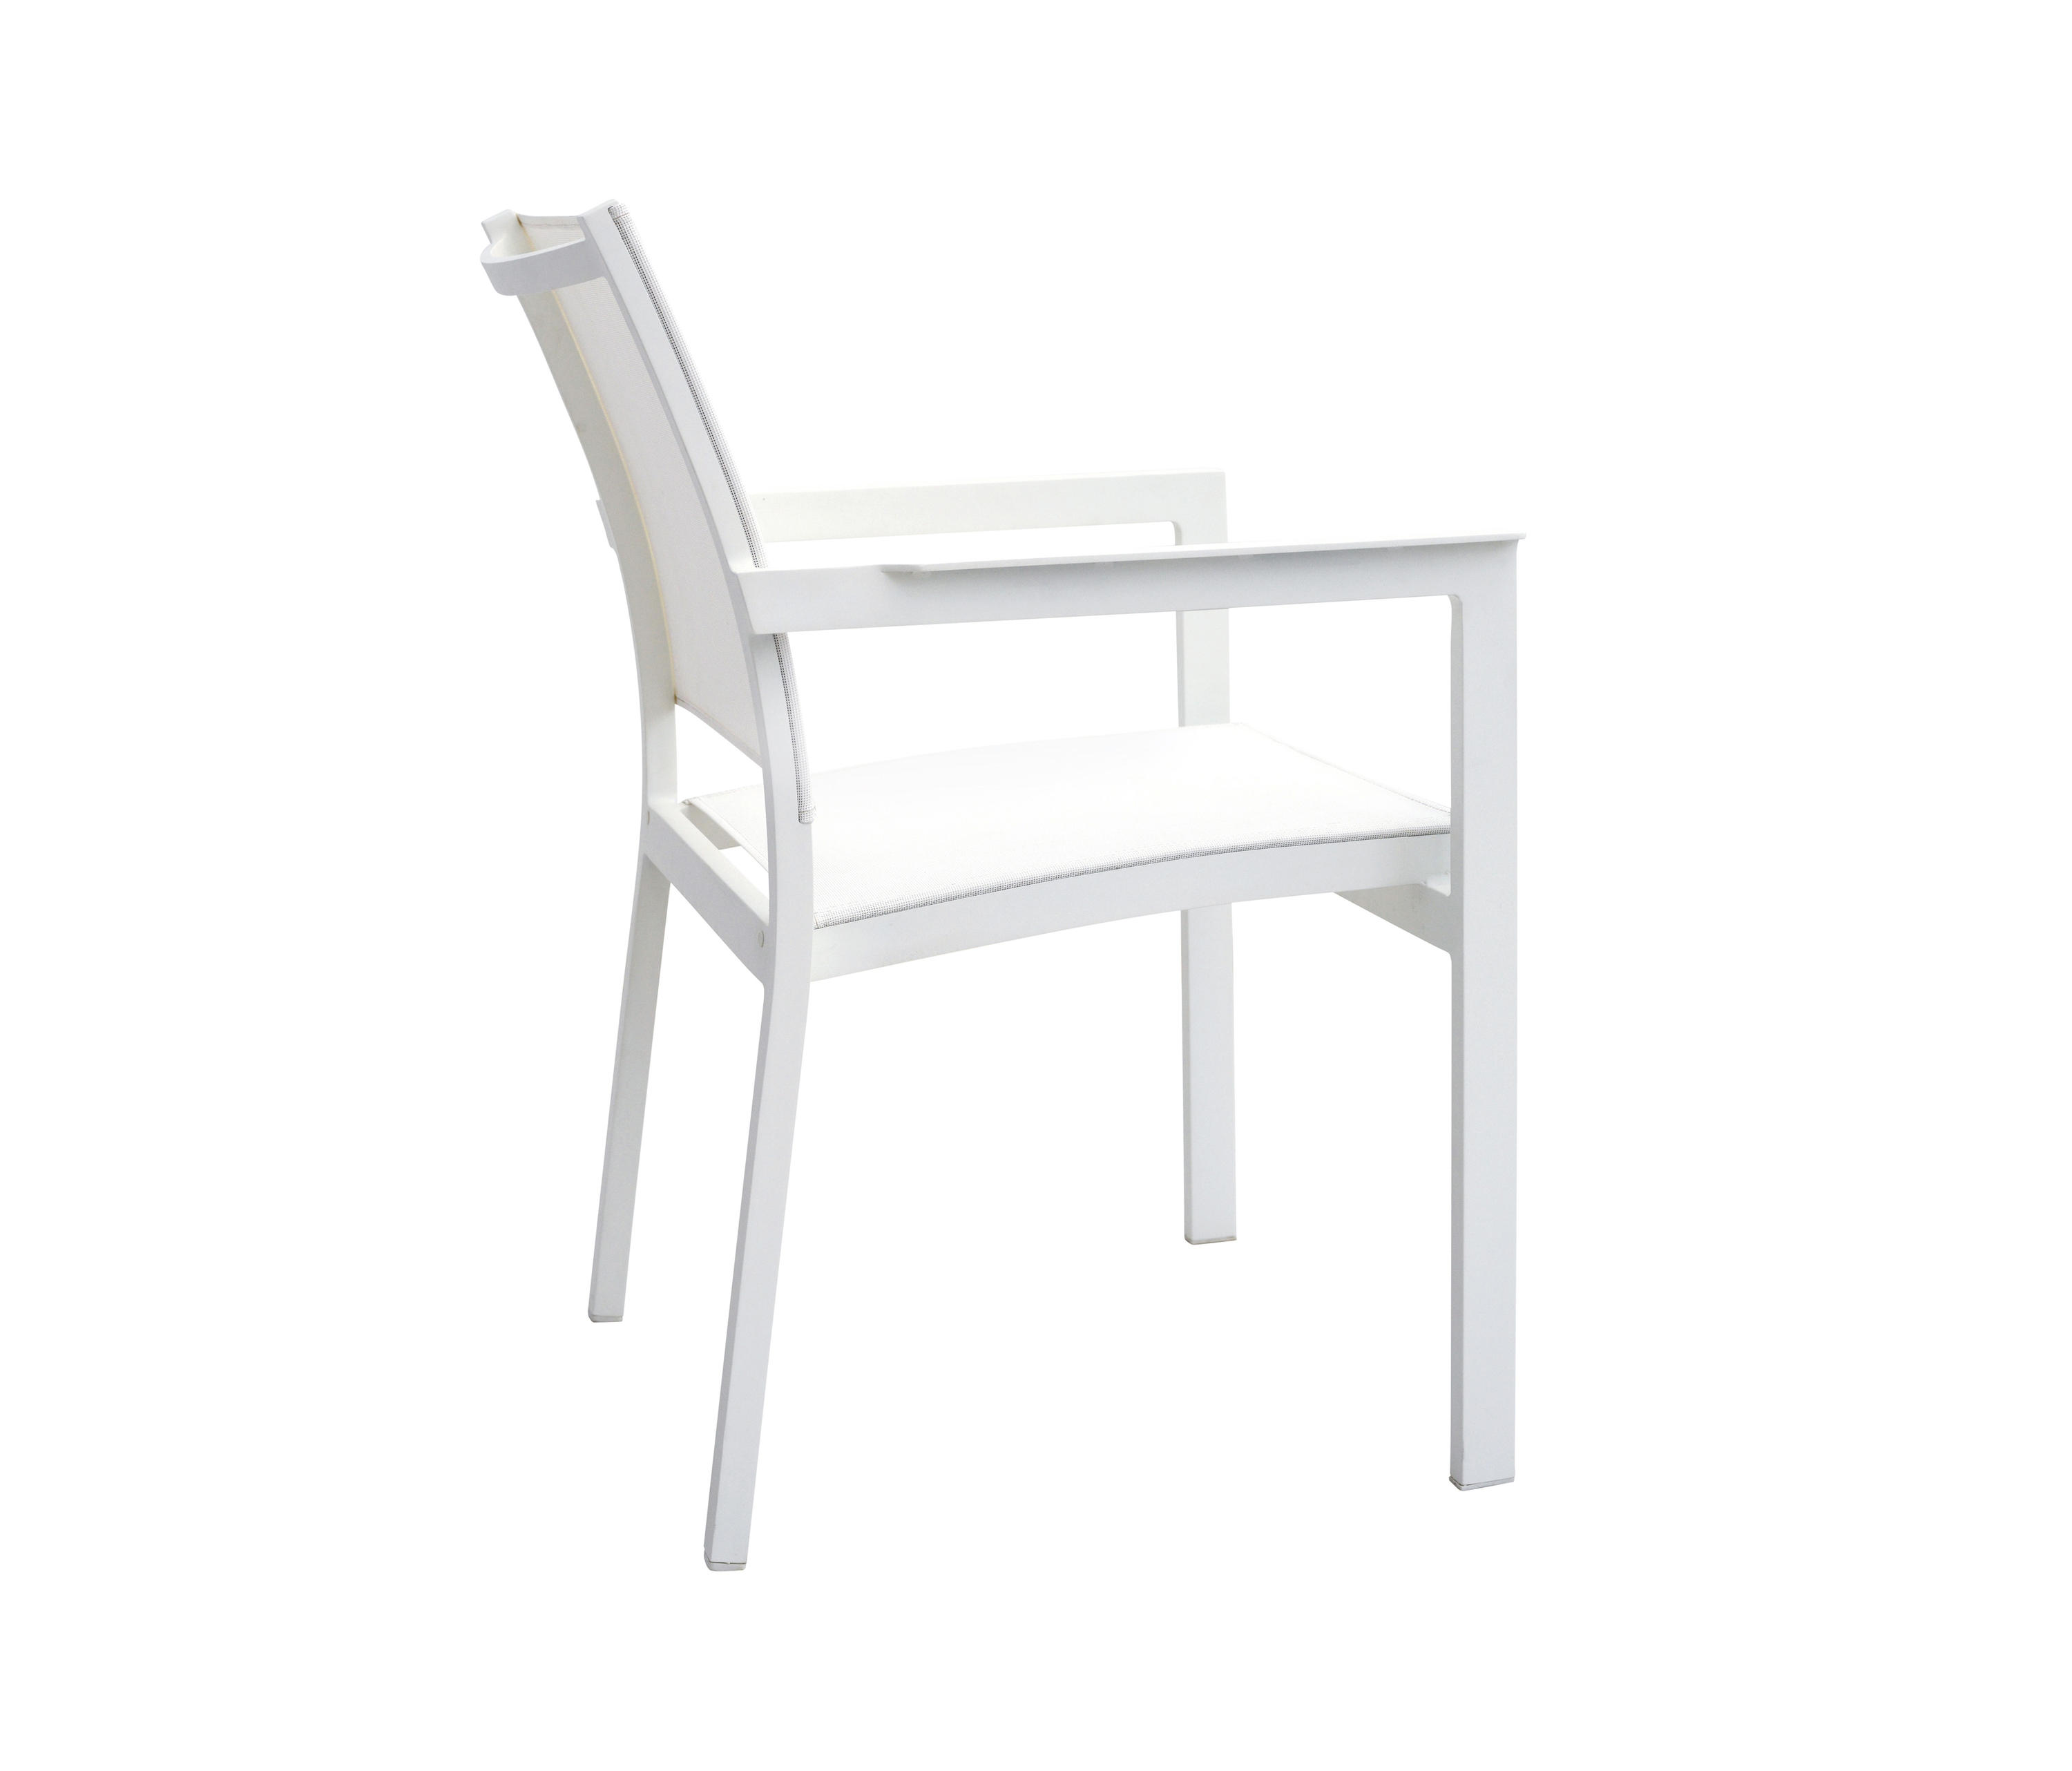 Long Beach Stacking Chair By Rausch Classics | Chairs ...